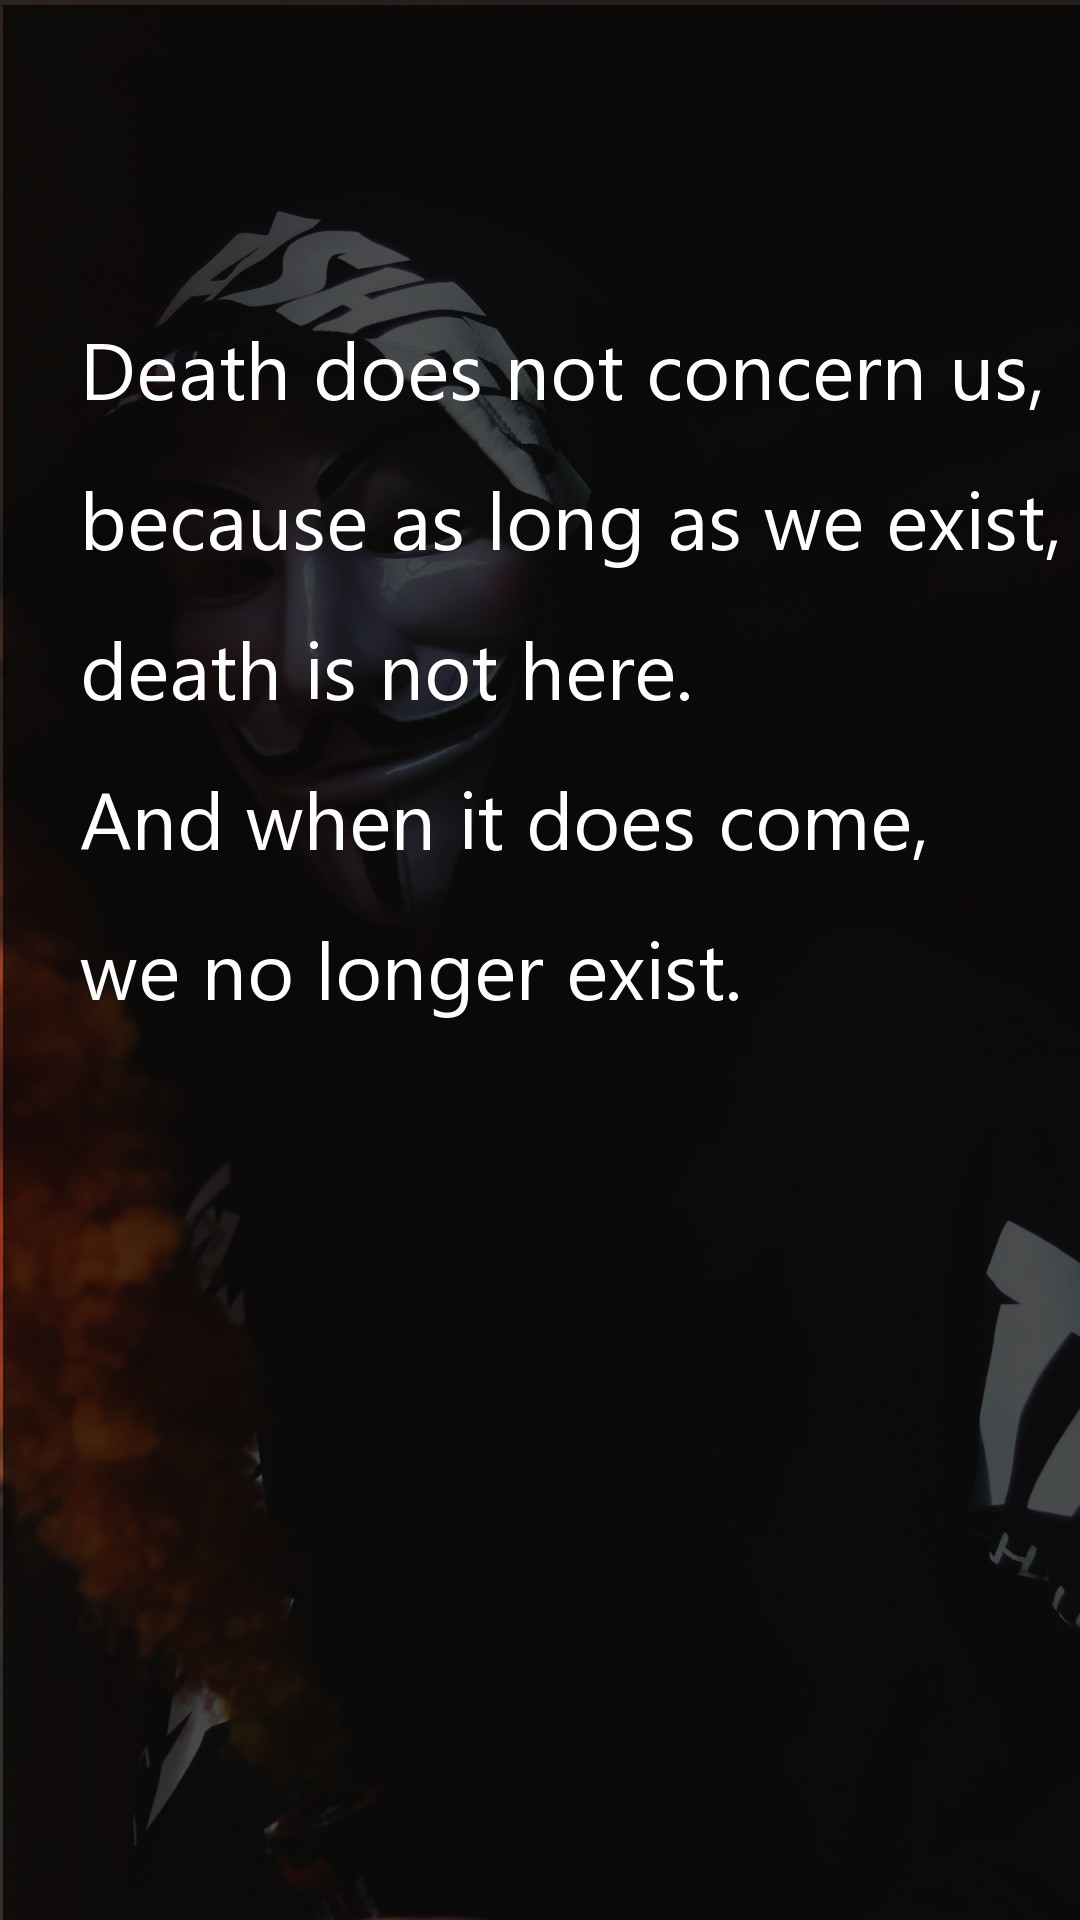 Death does not concern us